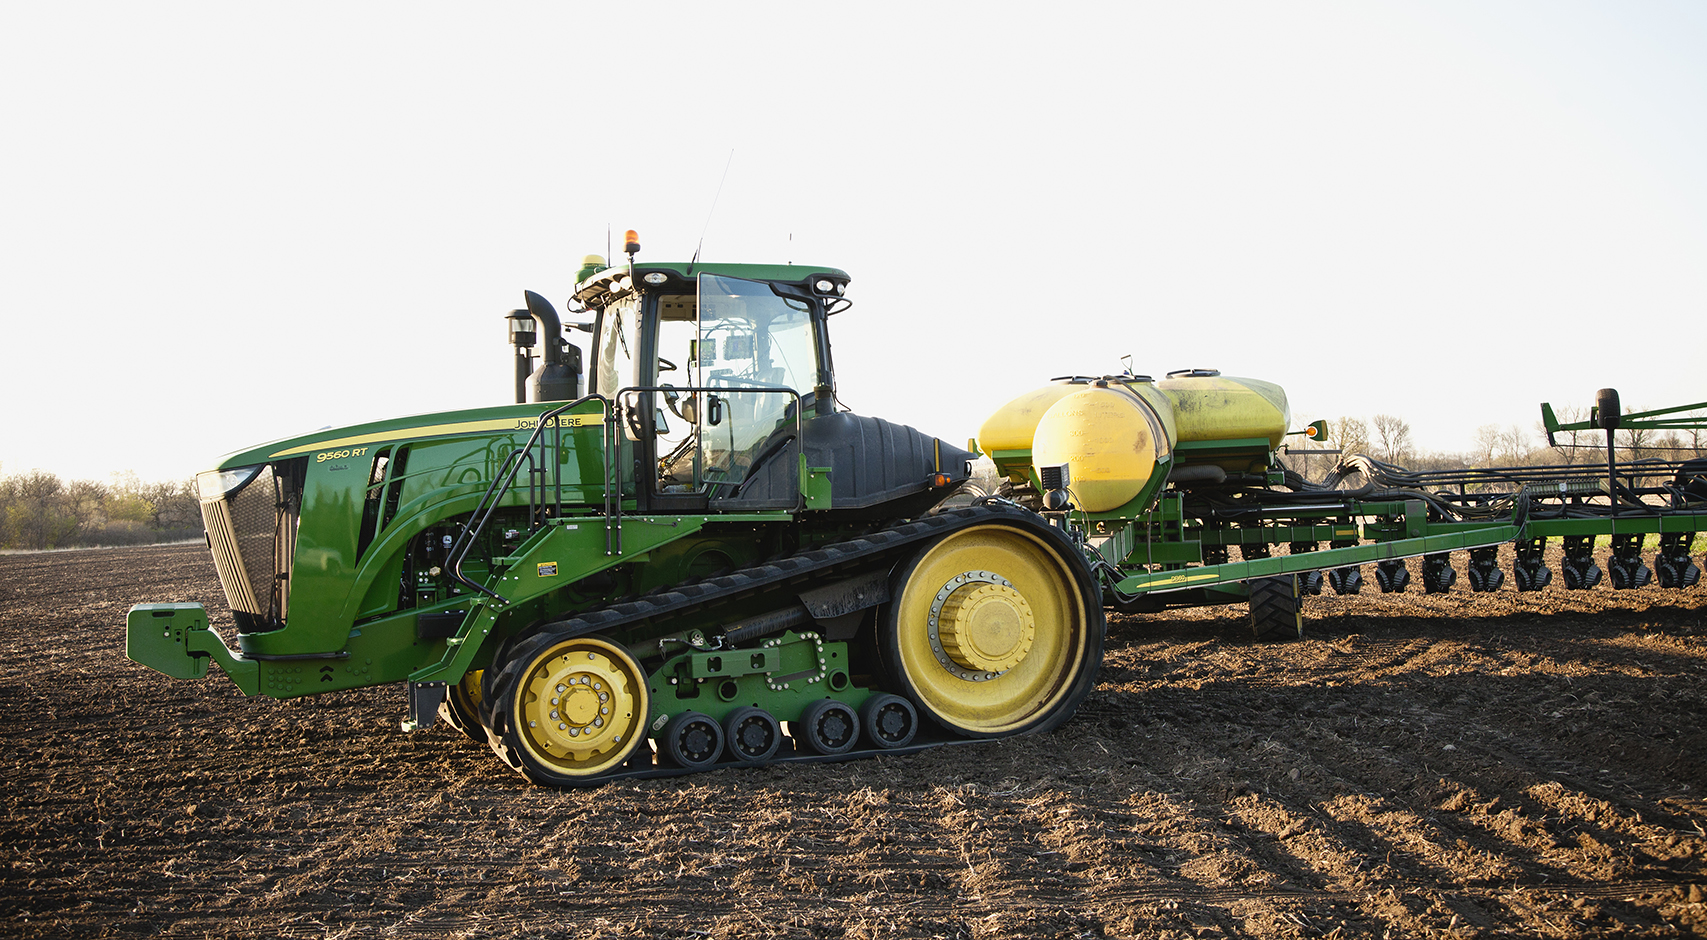 Camso receives Partner-level status from John Deere for third consecutive year